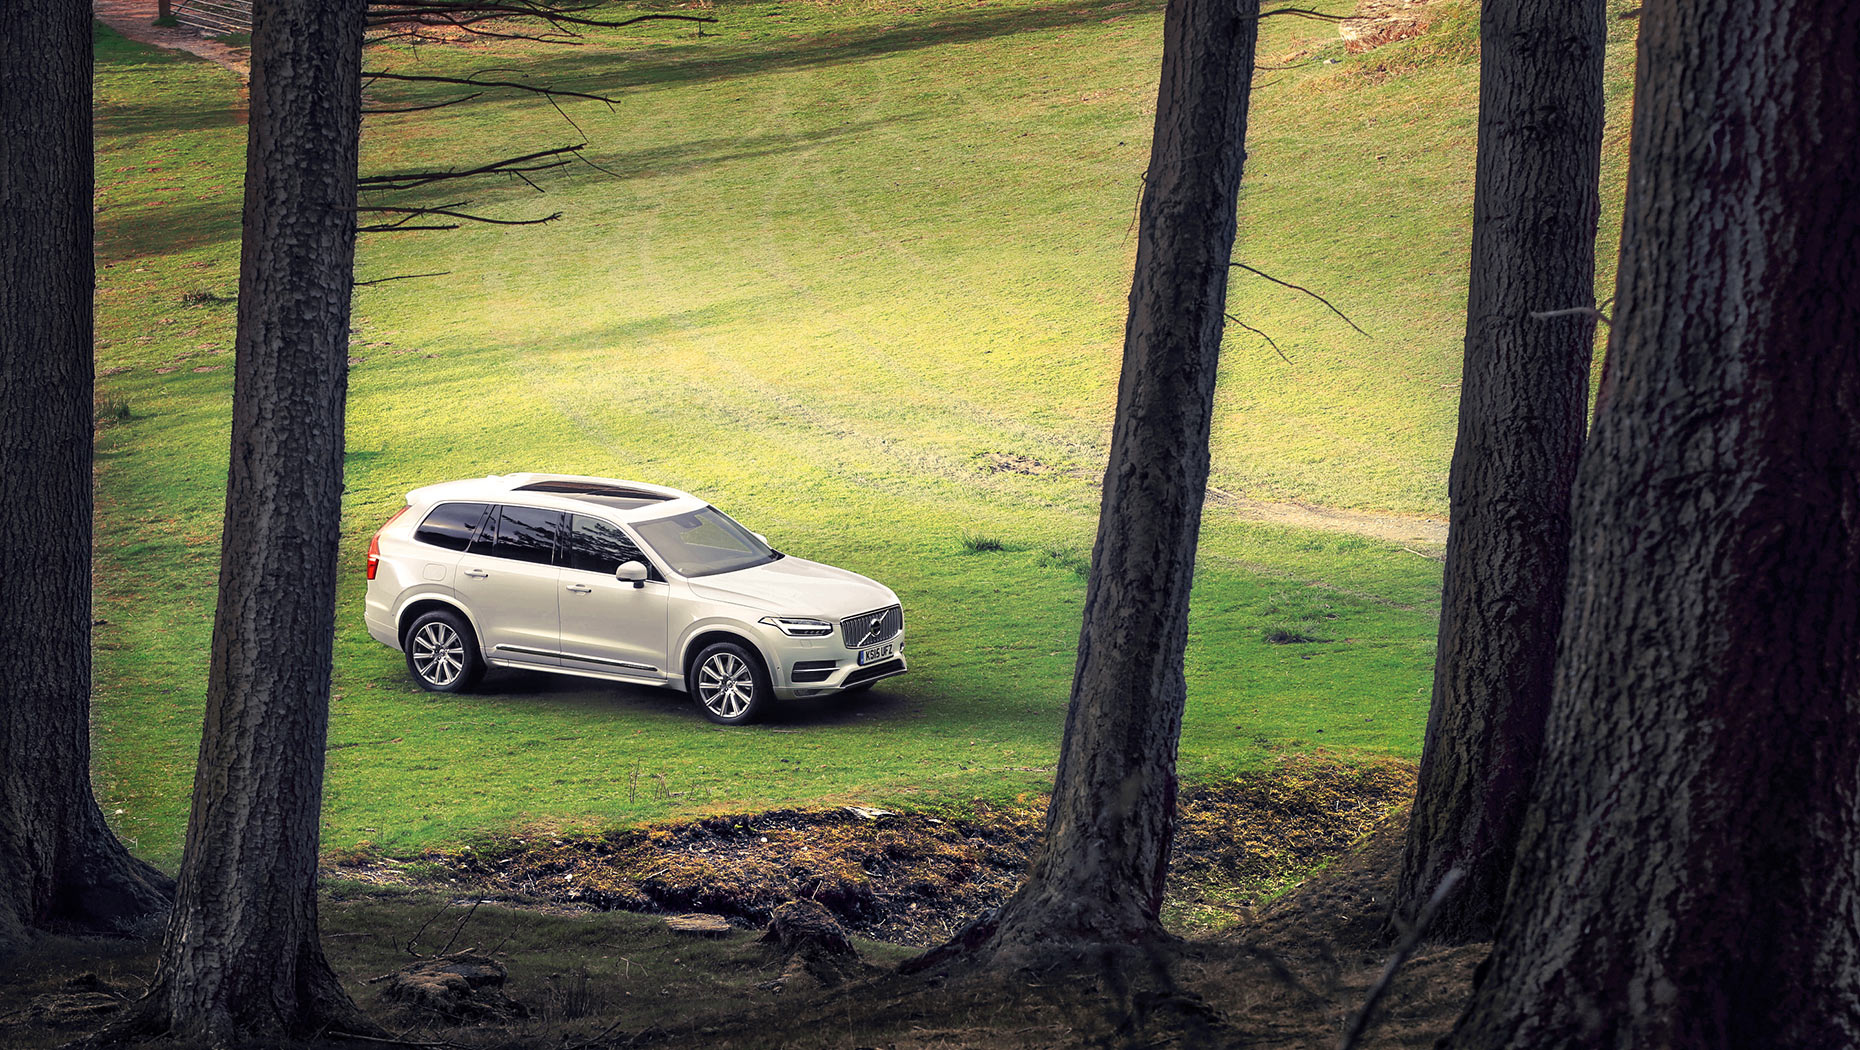 White-Volvo-XC90-forest-july-17-crop